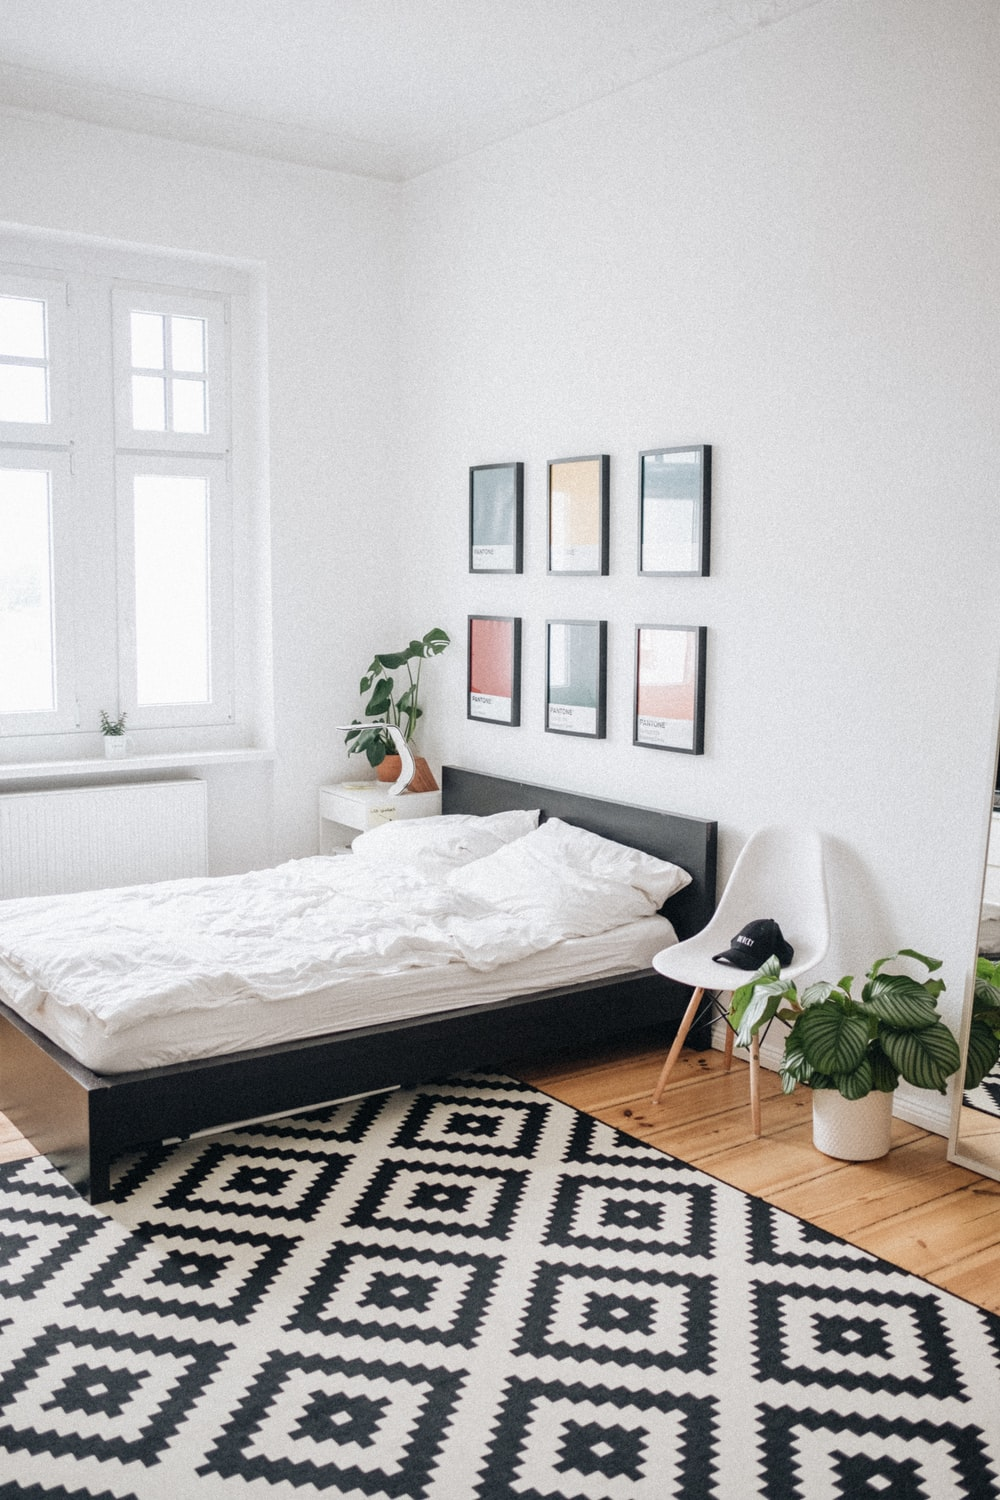 . 100  Bedroom Pictures   Download Free Images on Unsplash